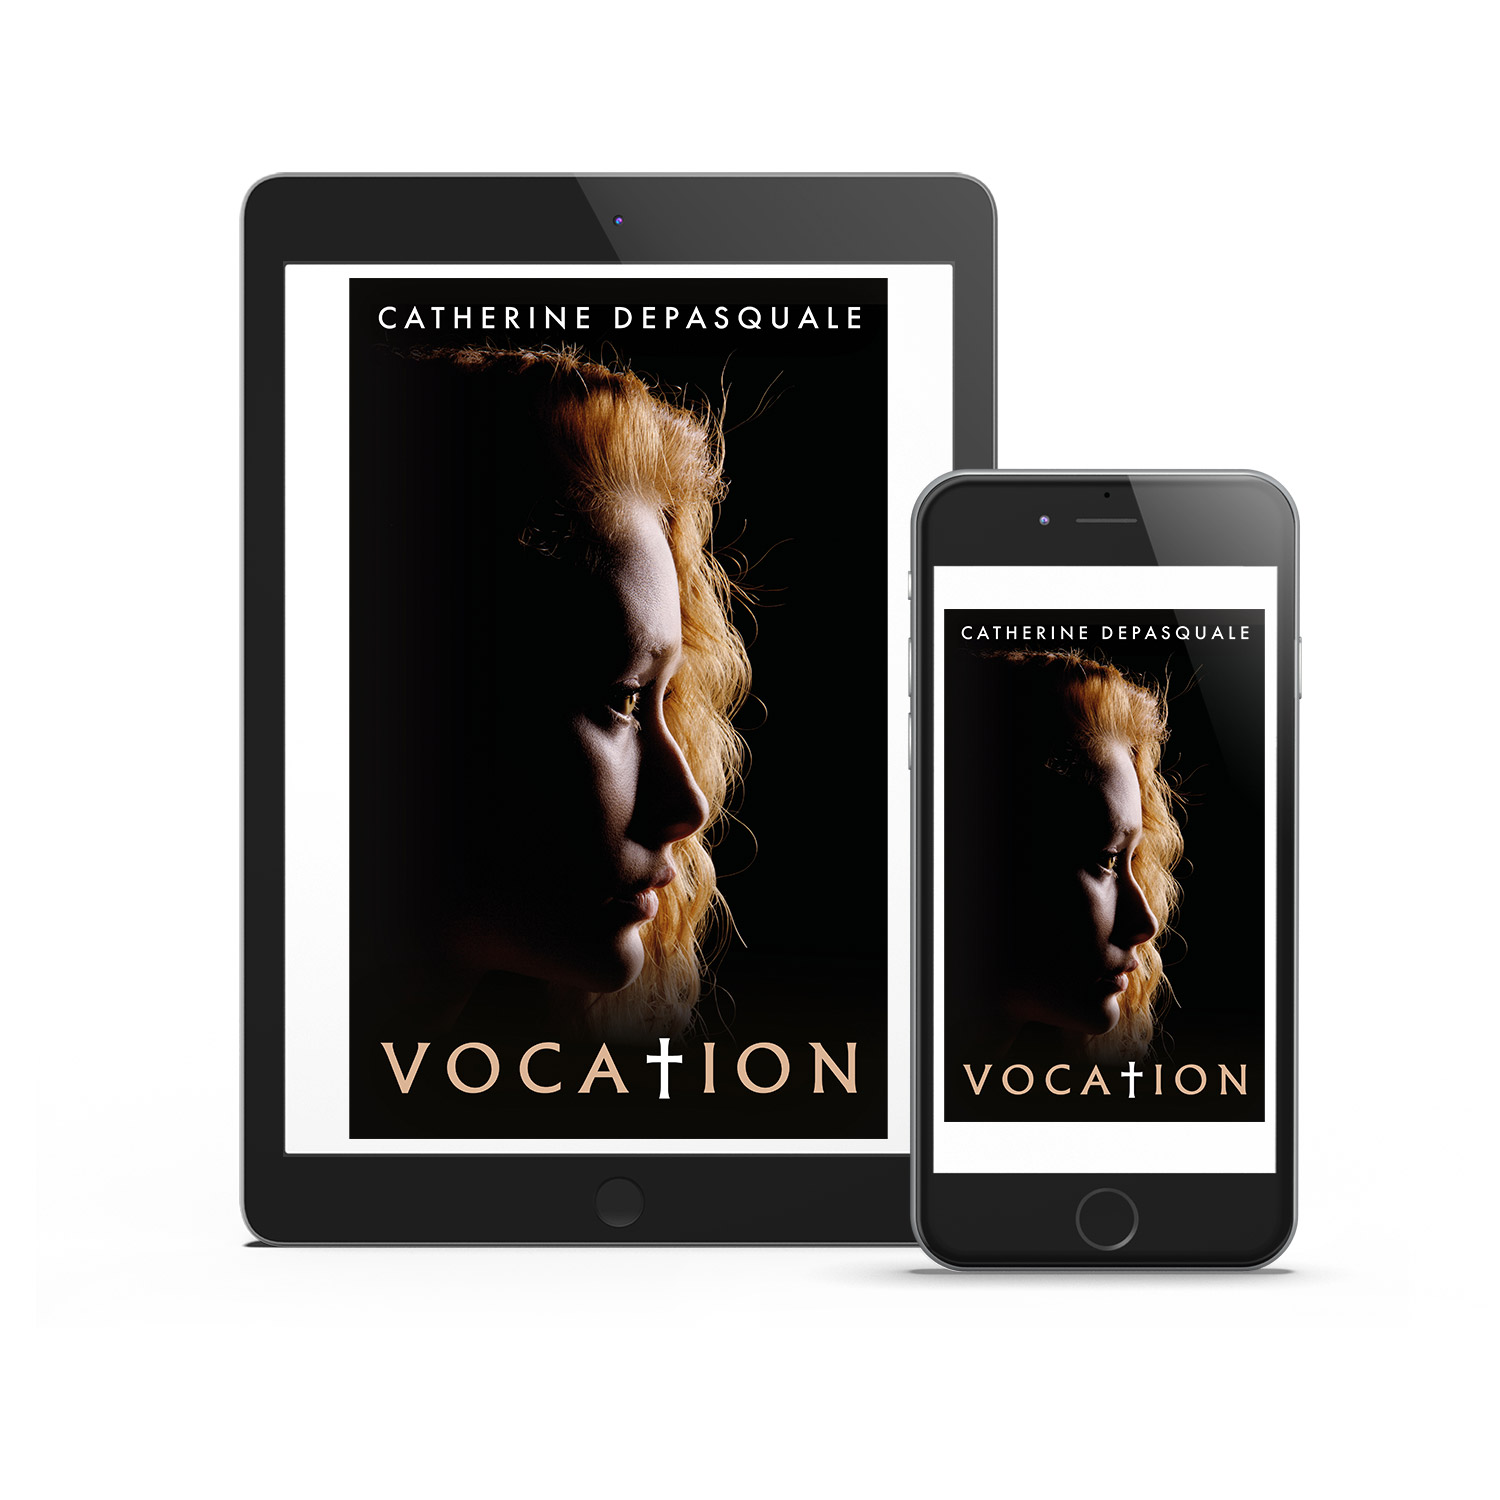 'Vocation' is a great faith-focussed modern novel. The author is Catherine DePasquale. The book cover design and interior formatting are by Mark Thomas. To learn more about what Mark could do for your book, please visit coverness.com.